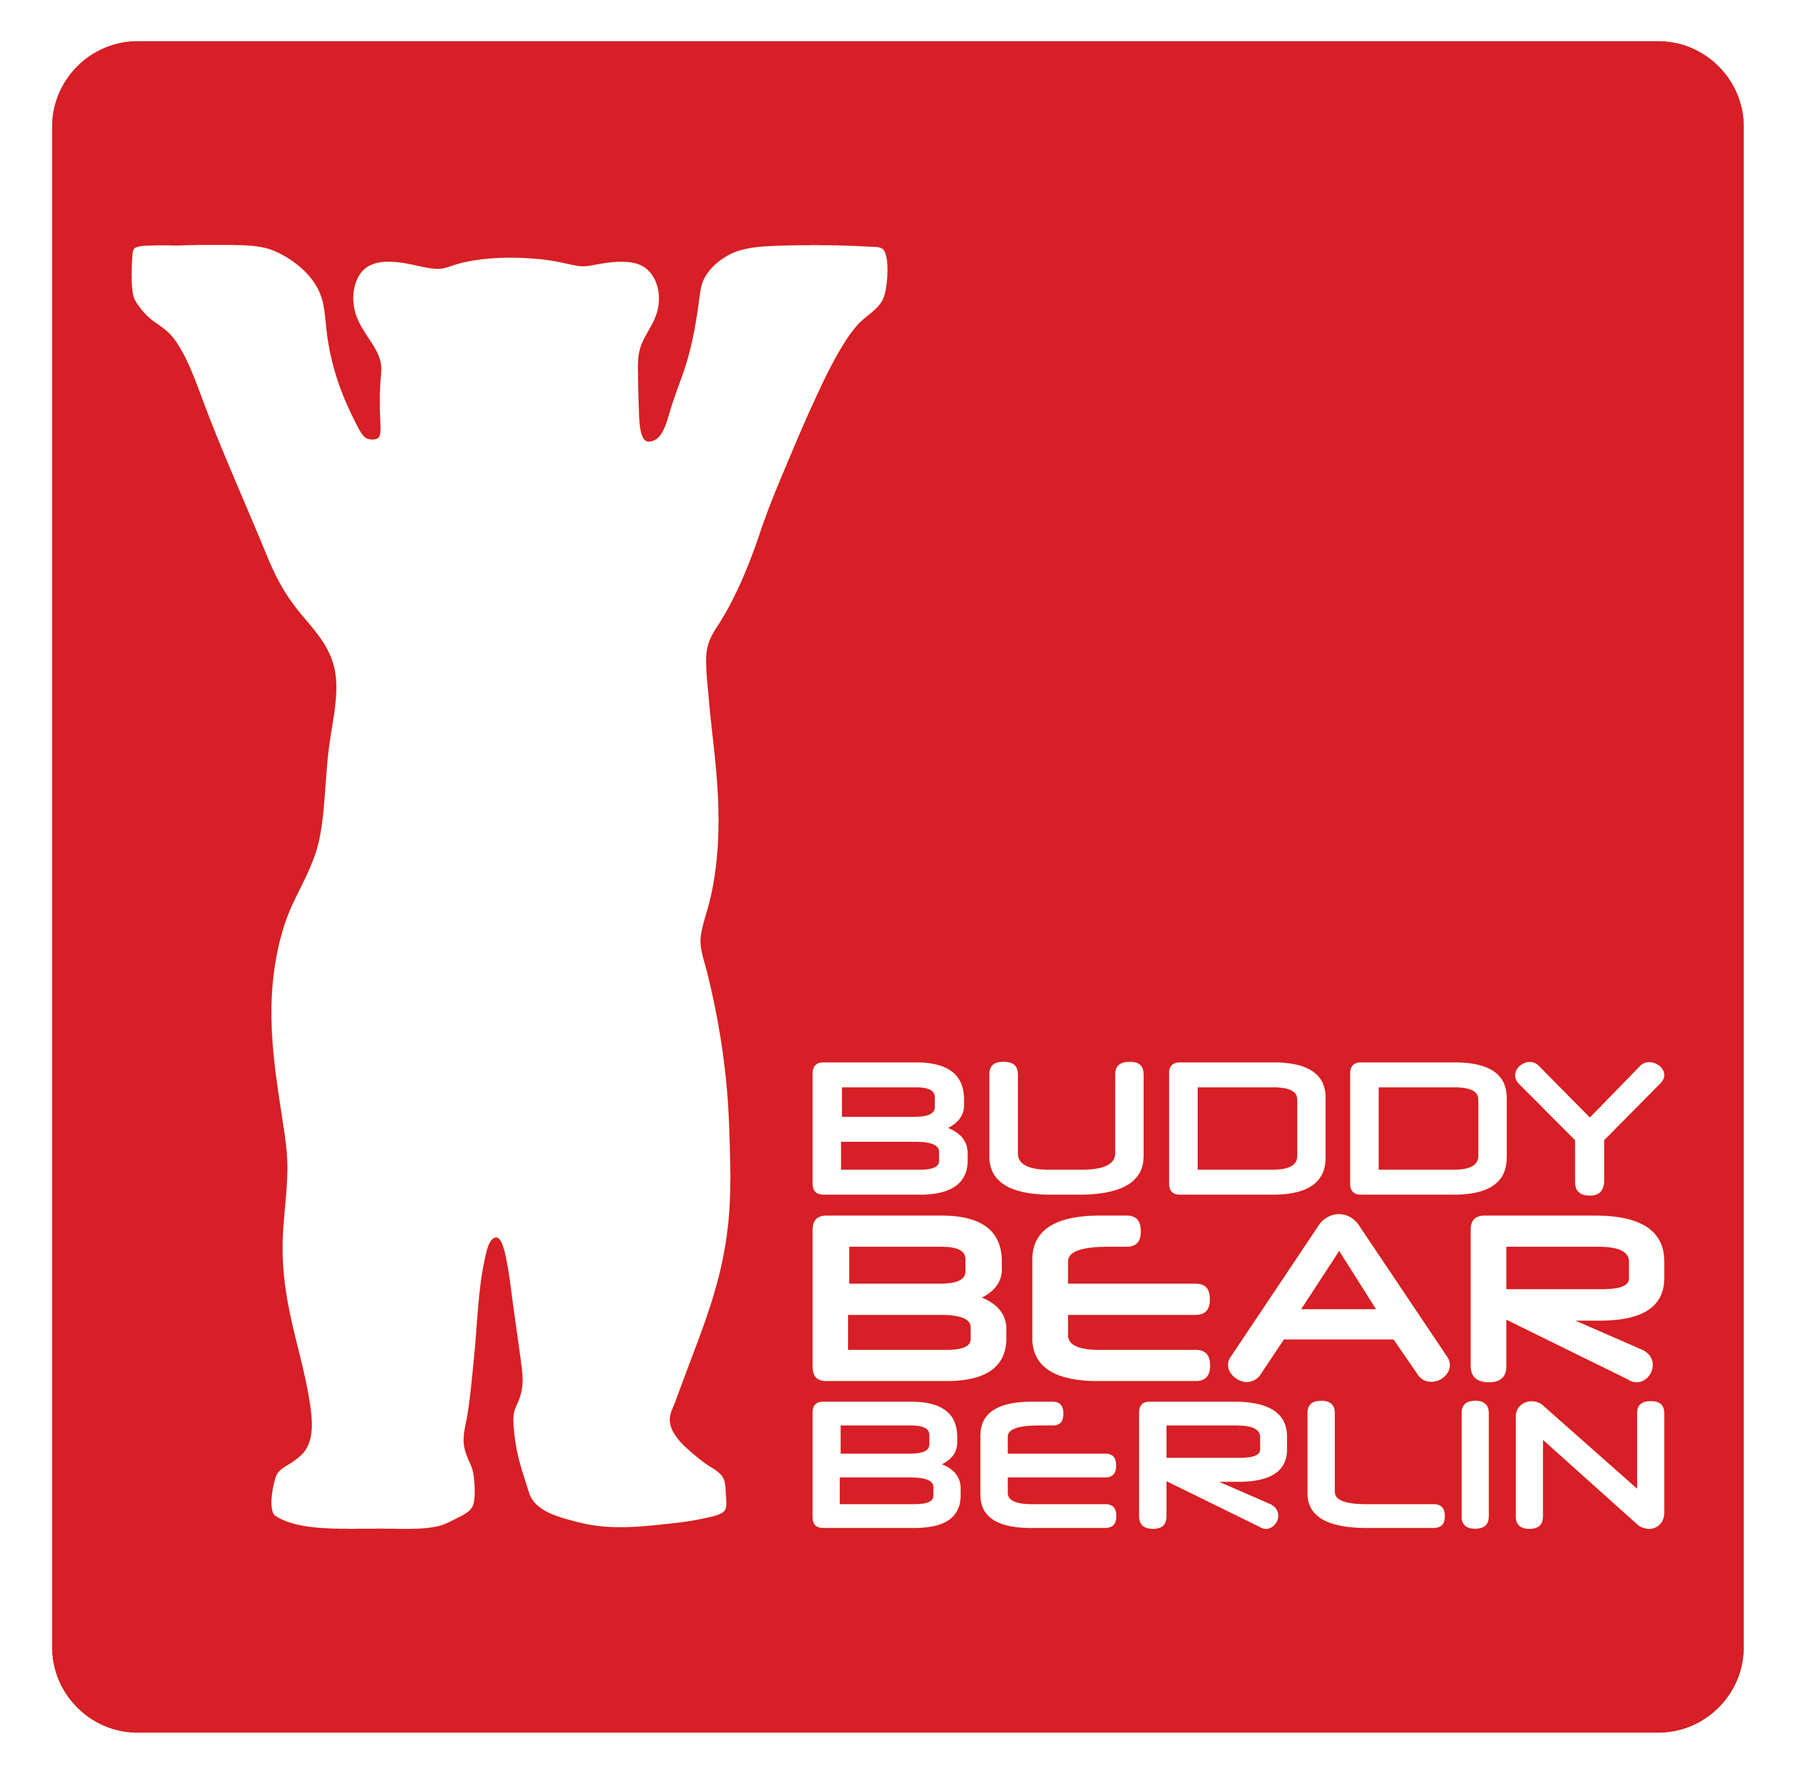 Buddy-Bar_Berlin